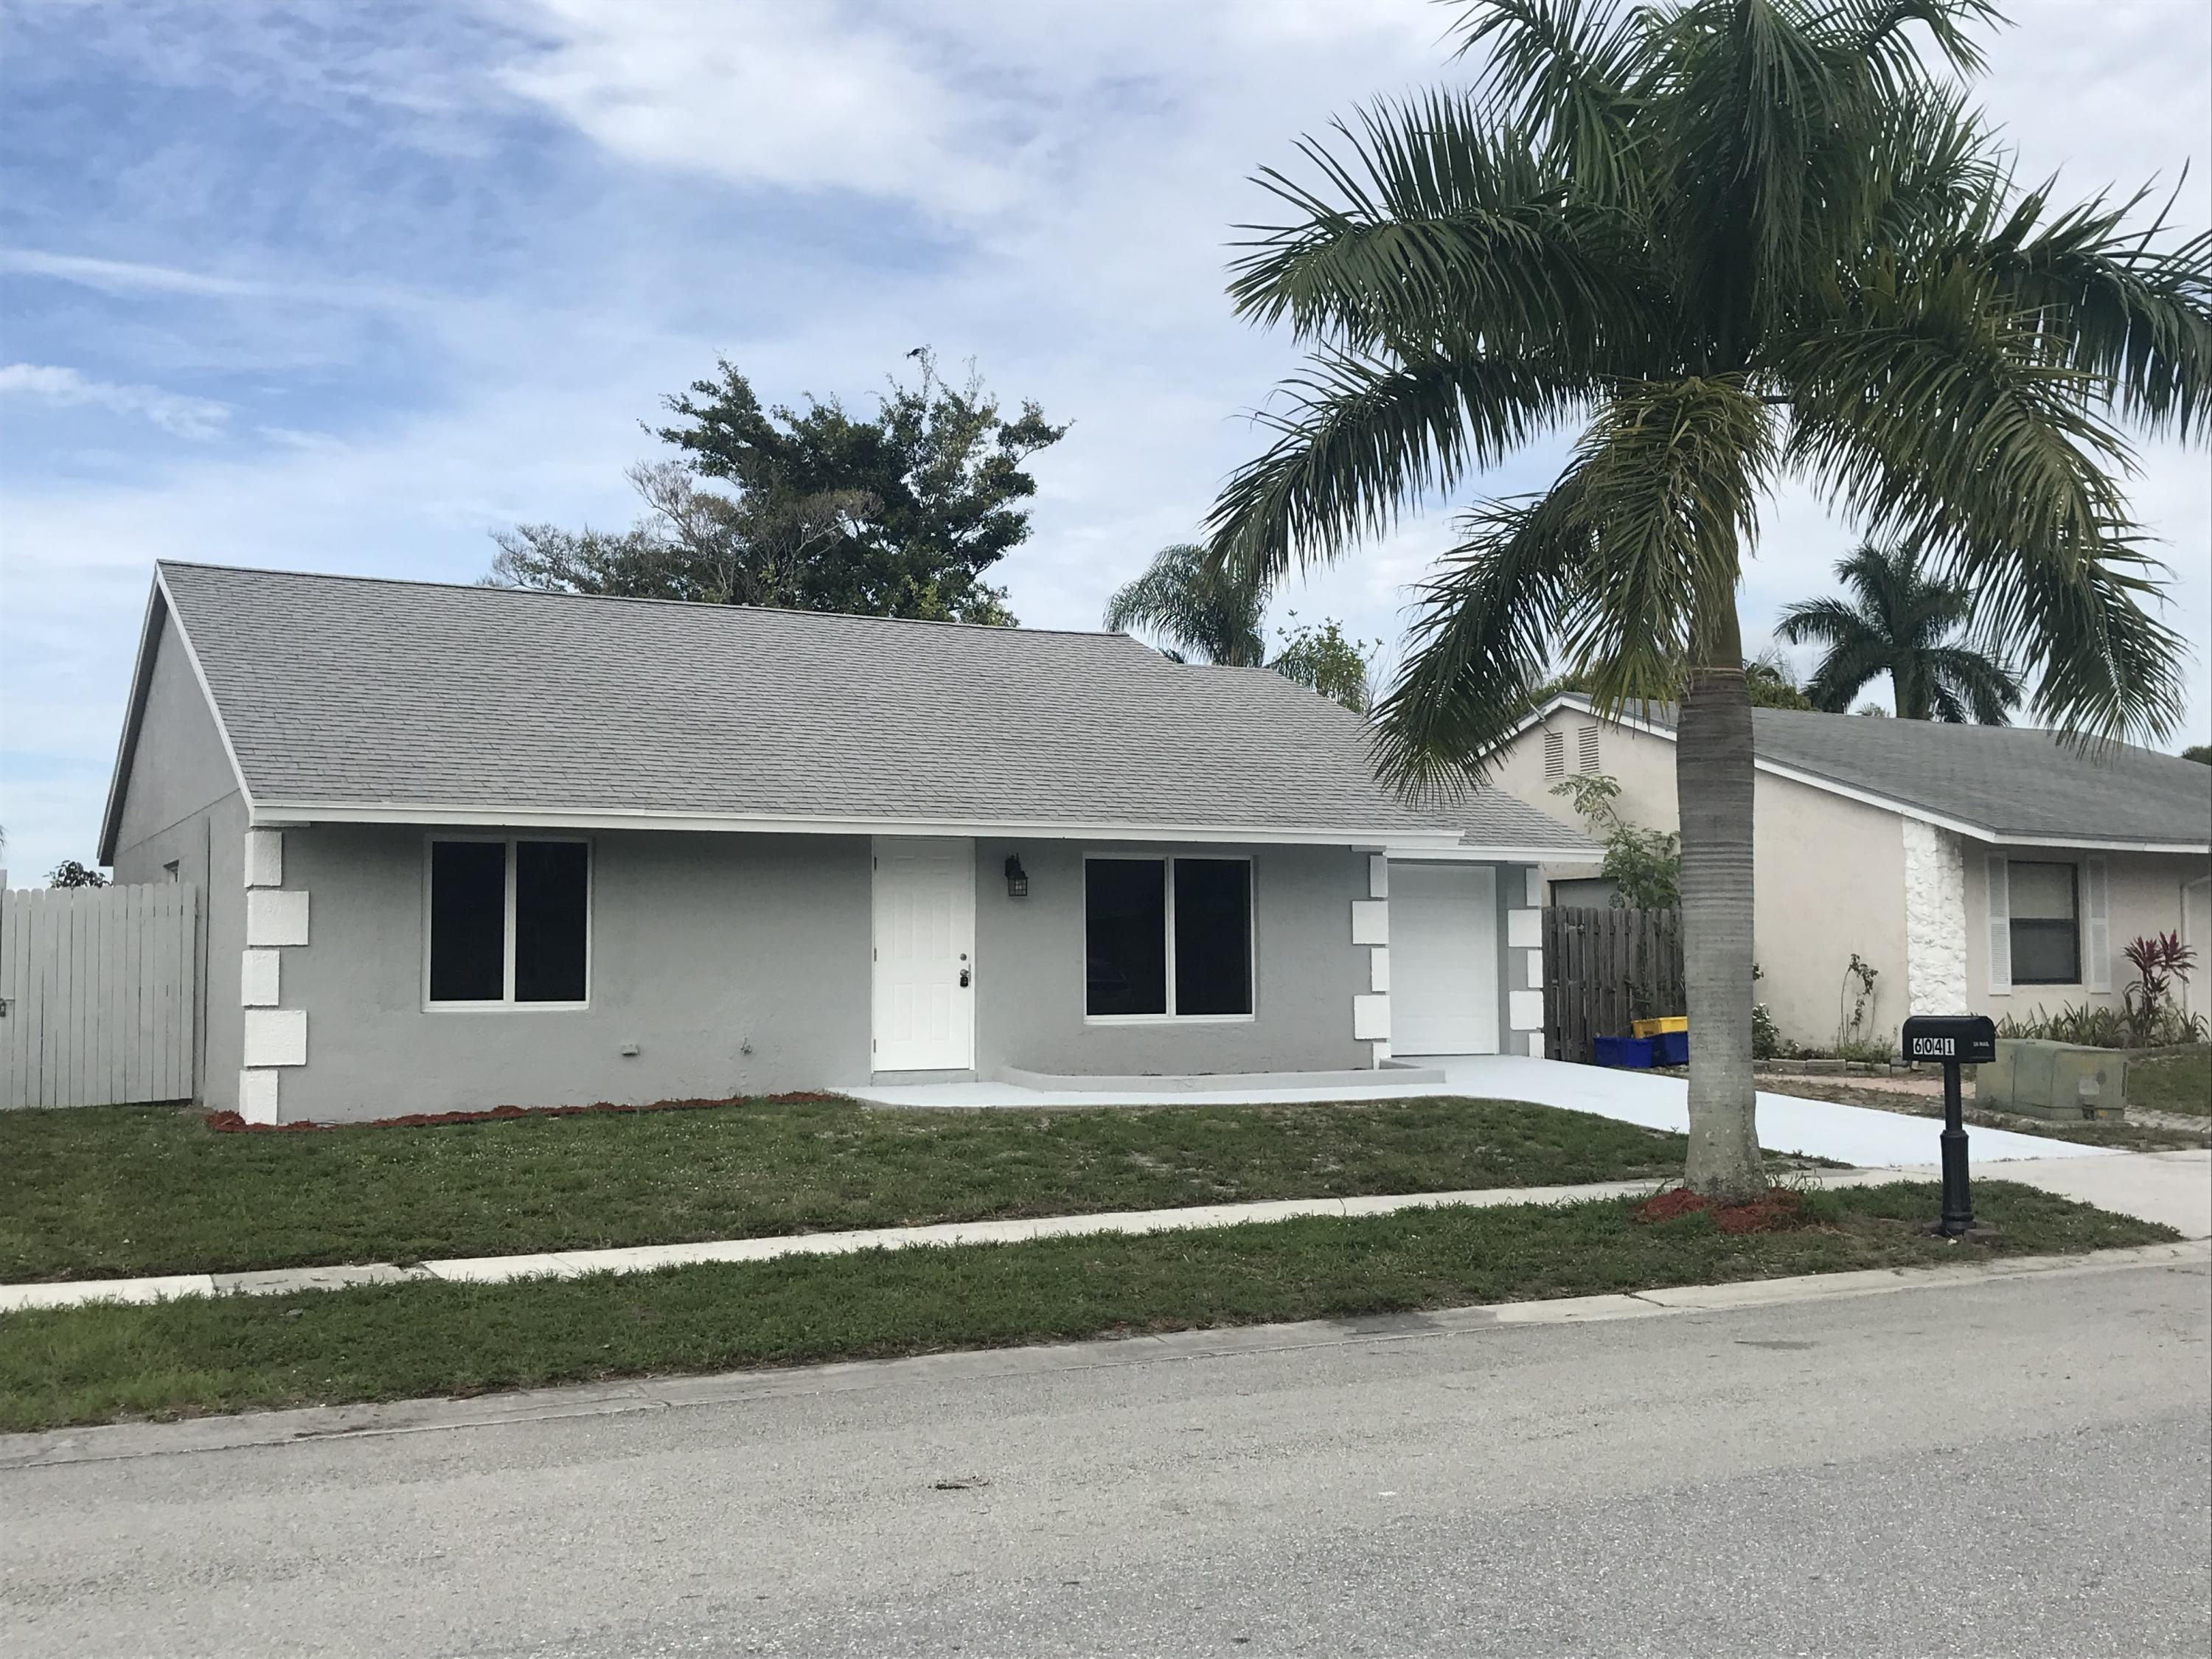 Home for sale in Lantana Homes Lake Worth Florida